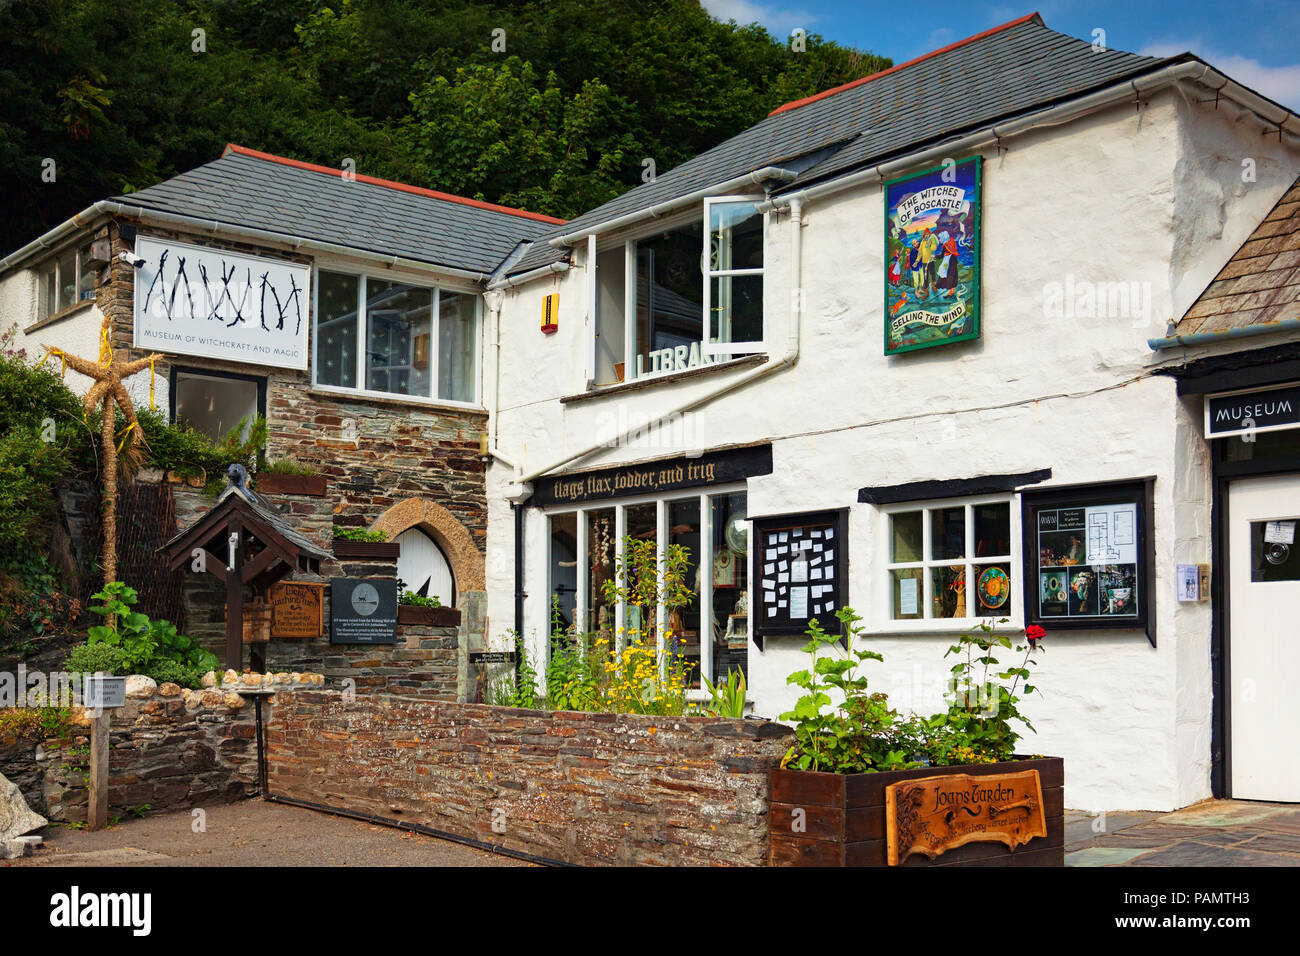 2 July 2018: Boscastle, Cornwall, UK - The Museum of Witchcraft. Stock Photo